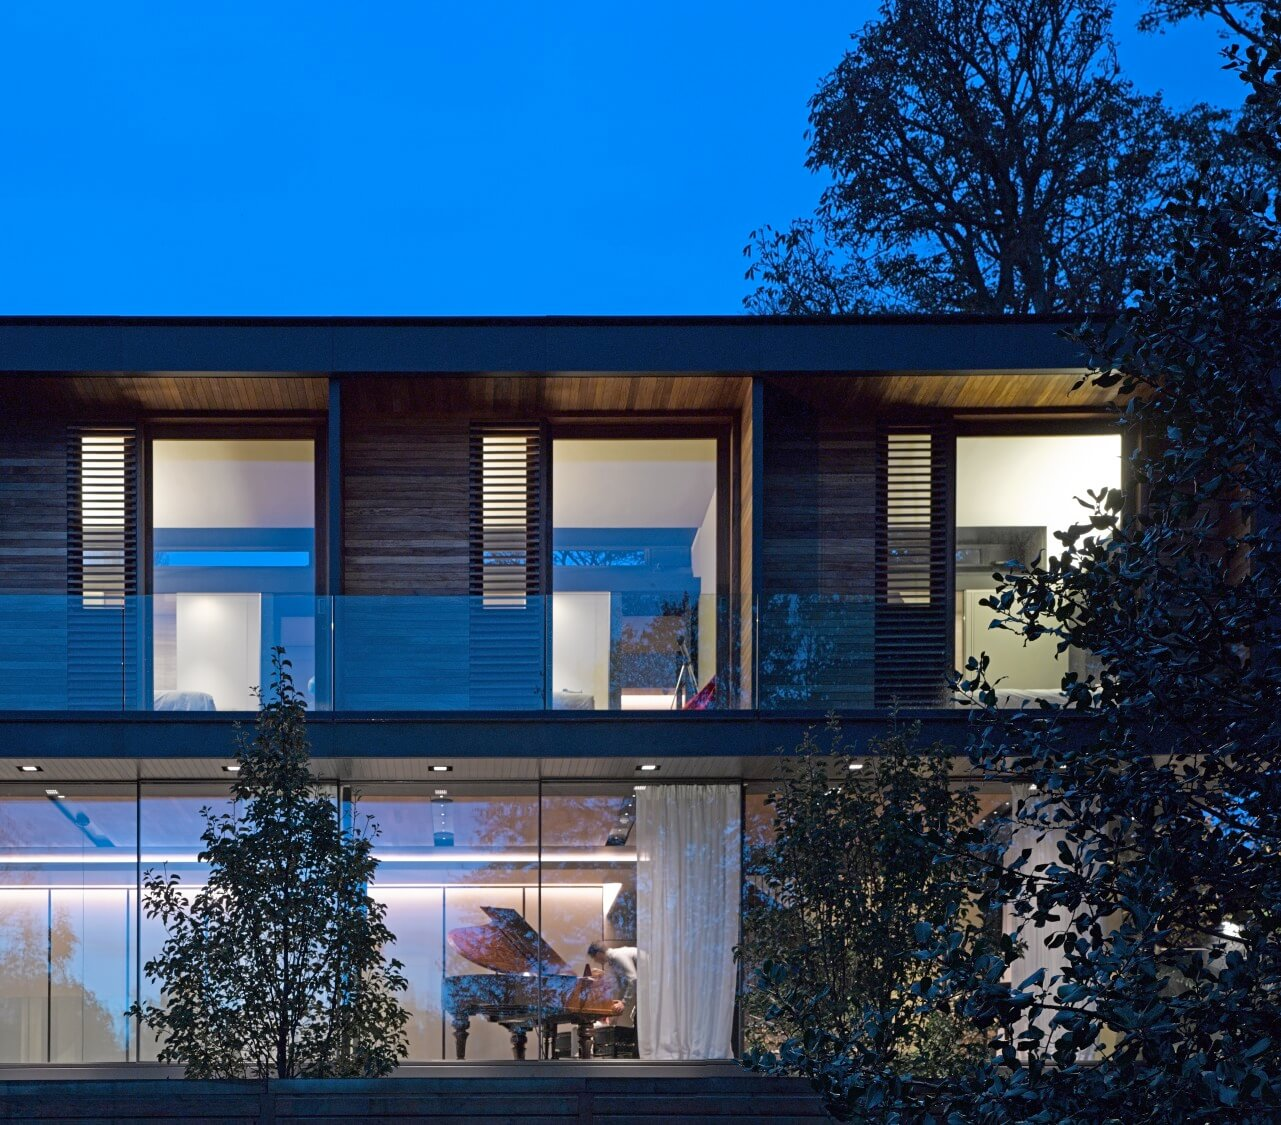 The two floors visible here achieve transparency with full height glazing, while the upper level uses extensive hardwood paneling for privacy in the bedroom spaces.